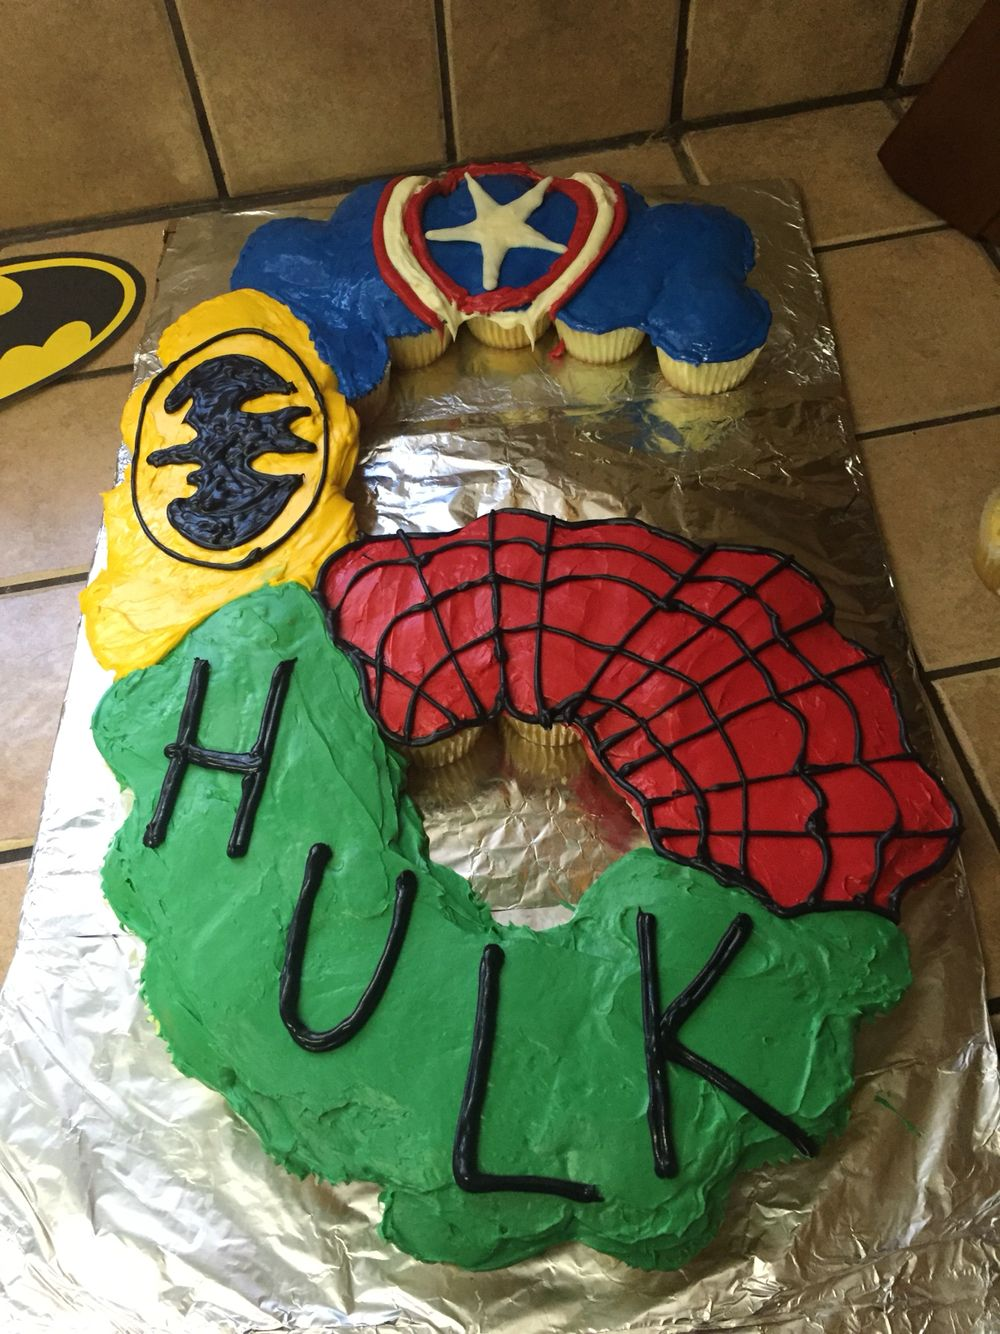 Superhero Cake Made From Cupcakes For A 6 Year Olds Birthday Party Captain America Batman Spider Man And Hulk